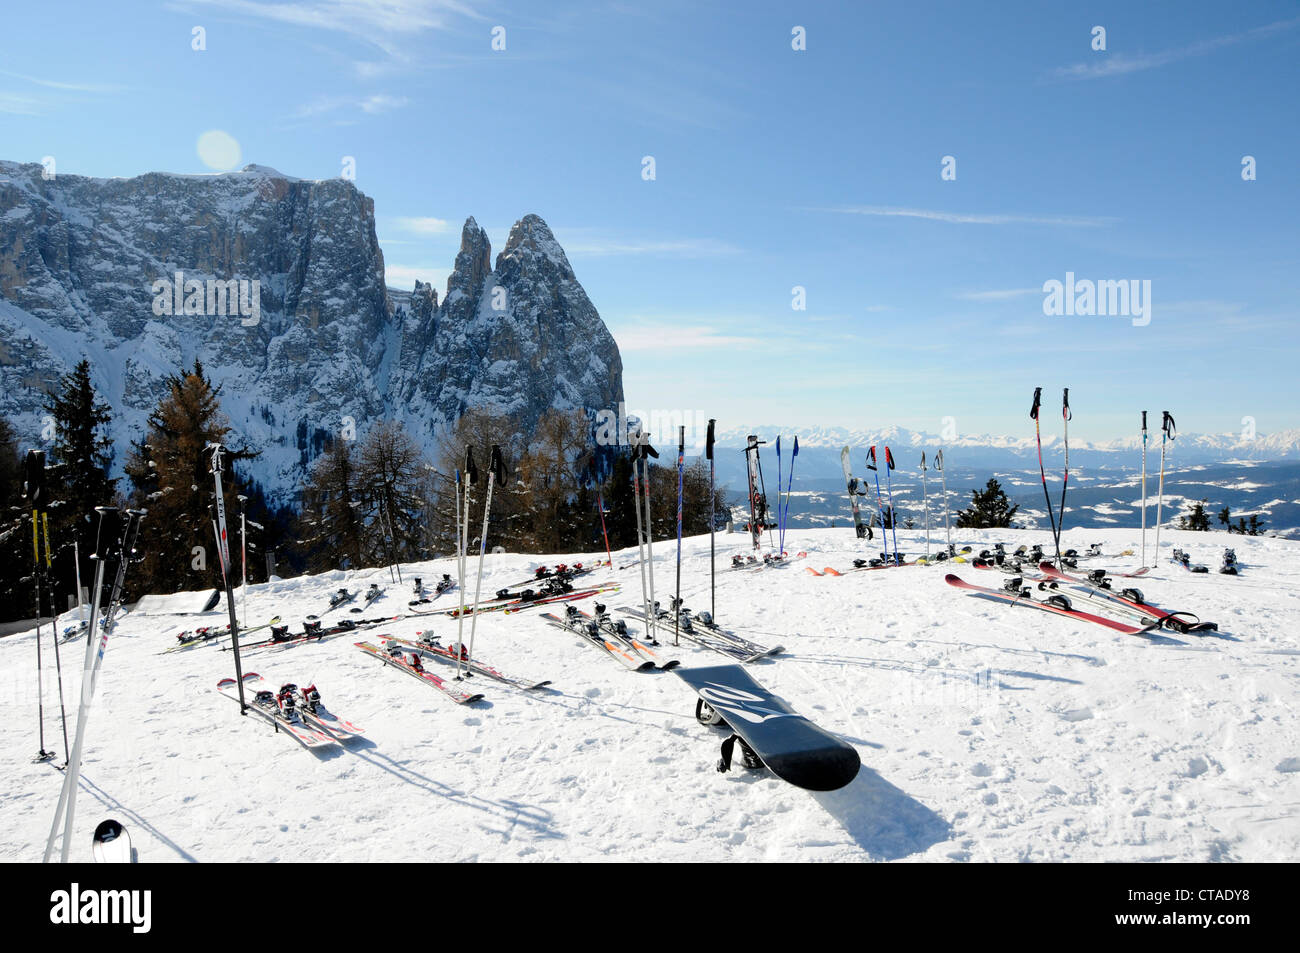 Snowboard with ski and stick in snow, Seiser Alm, UNESCO world natural heritage, Valle Isarco, South Tyrol, Trentino - Stock Image